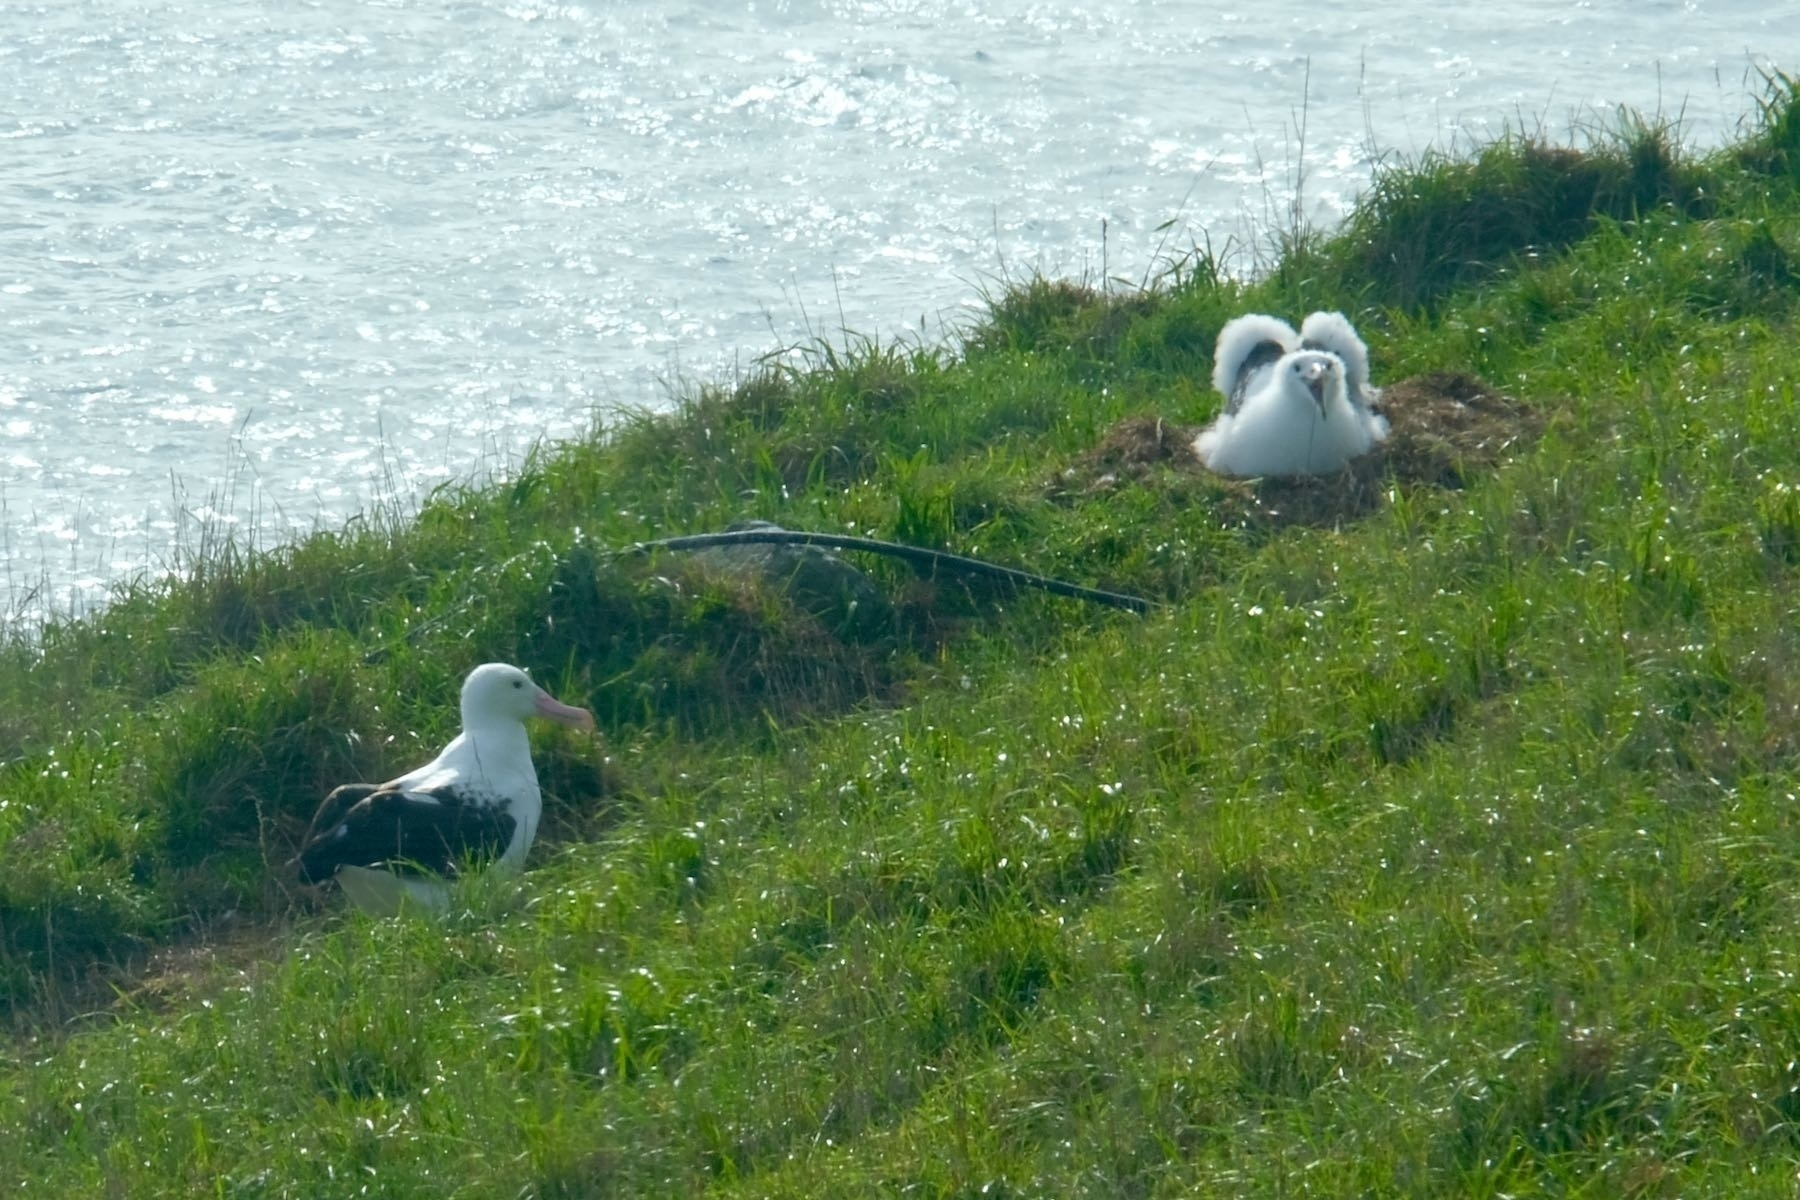 Adult albatross and chick.